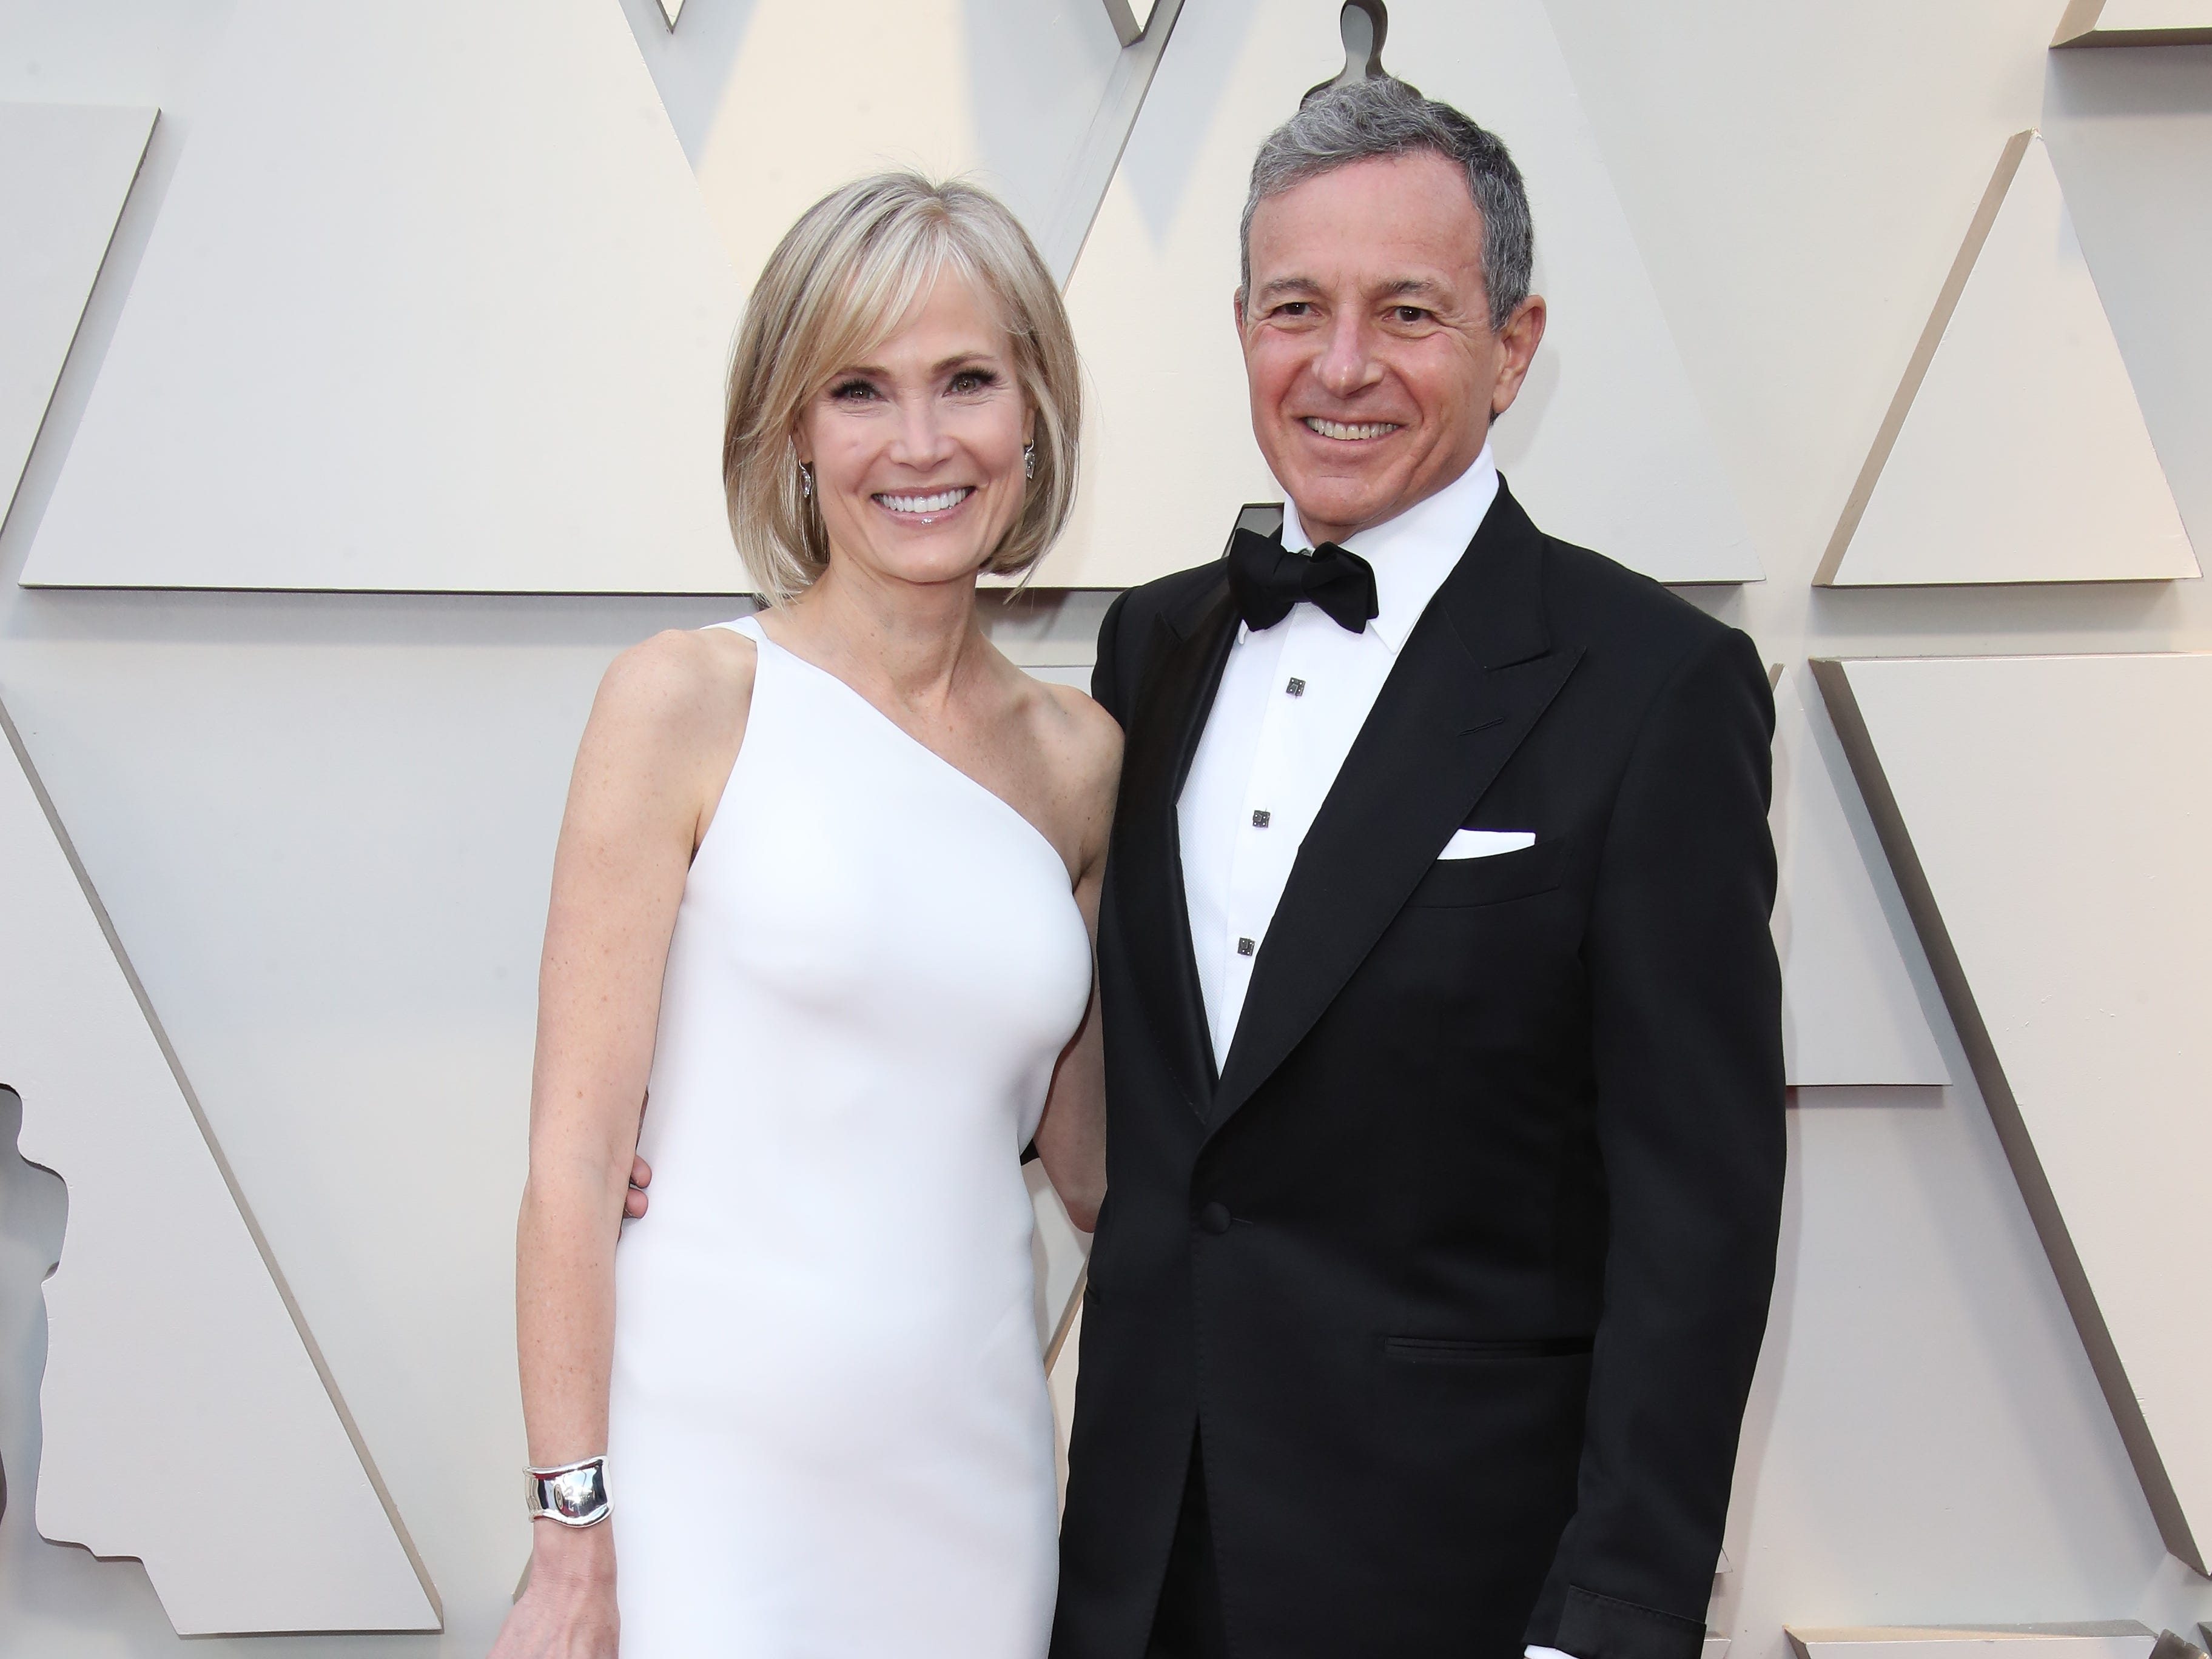 February 24, 2019; Los Angeles, CA, USA; Willow Bay, left, and Robert Iger arrive at the 91st Academy Awards at the Dolby Theatre. Mandatory Credit: Dan MacMedan-USA TODAY NETWORK (Via OlyDrop)